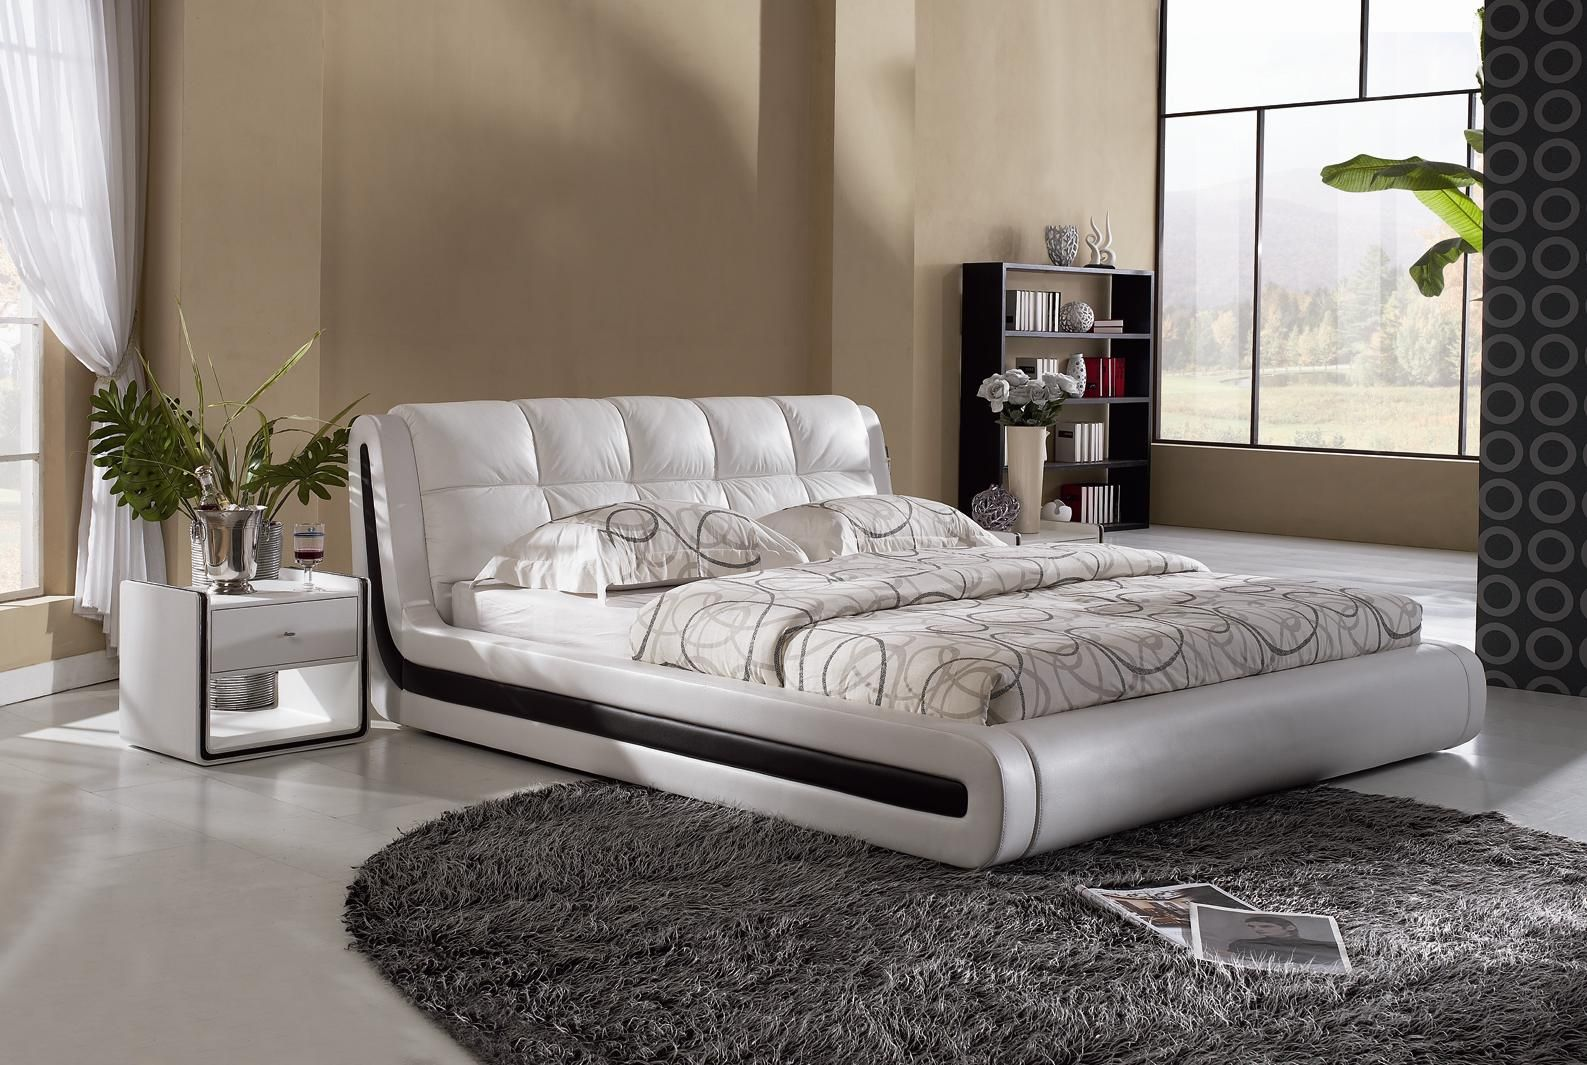 Modern bed designs home interior designer adult bedroom for Bed design ideas 2016